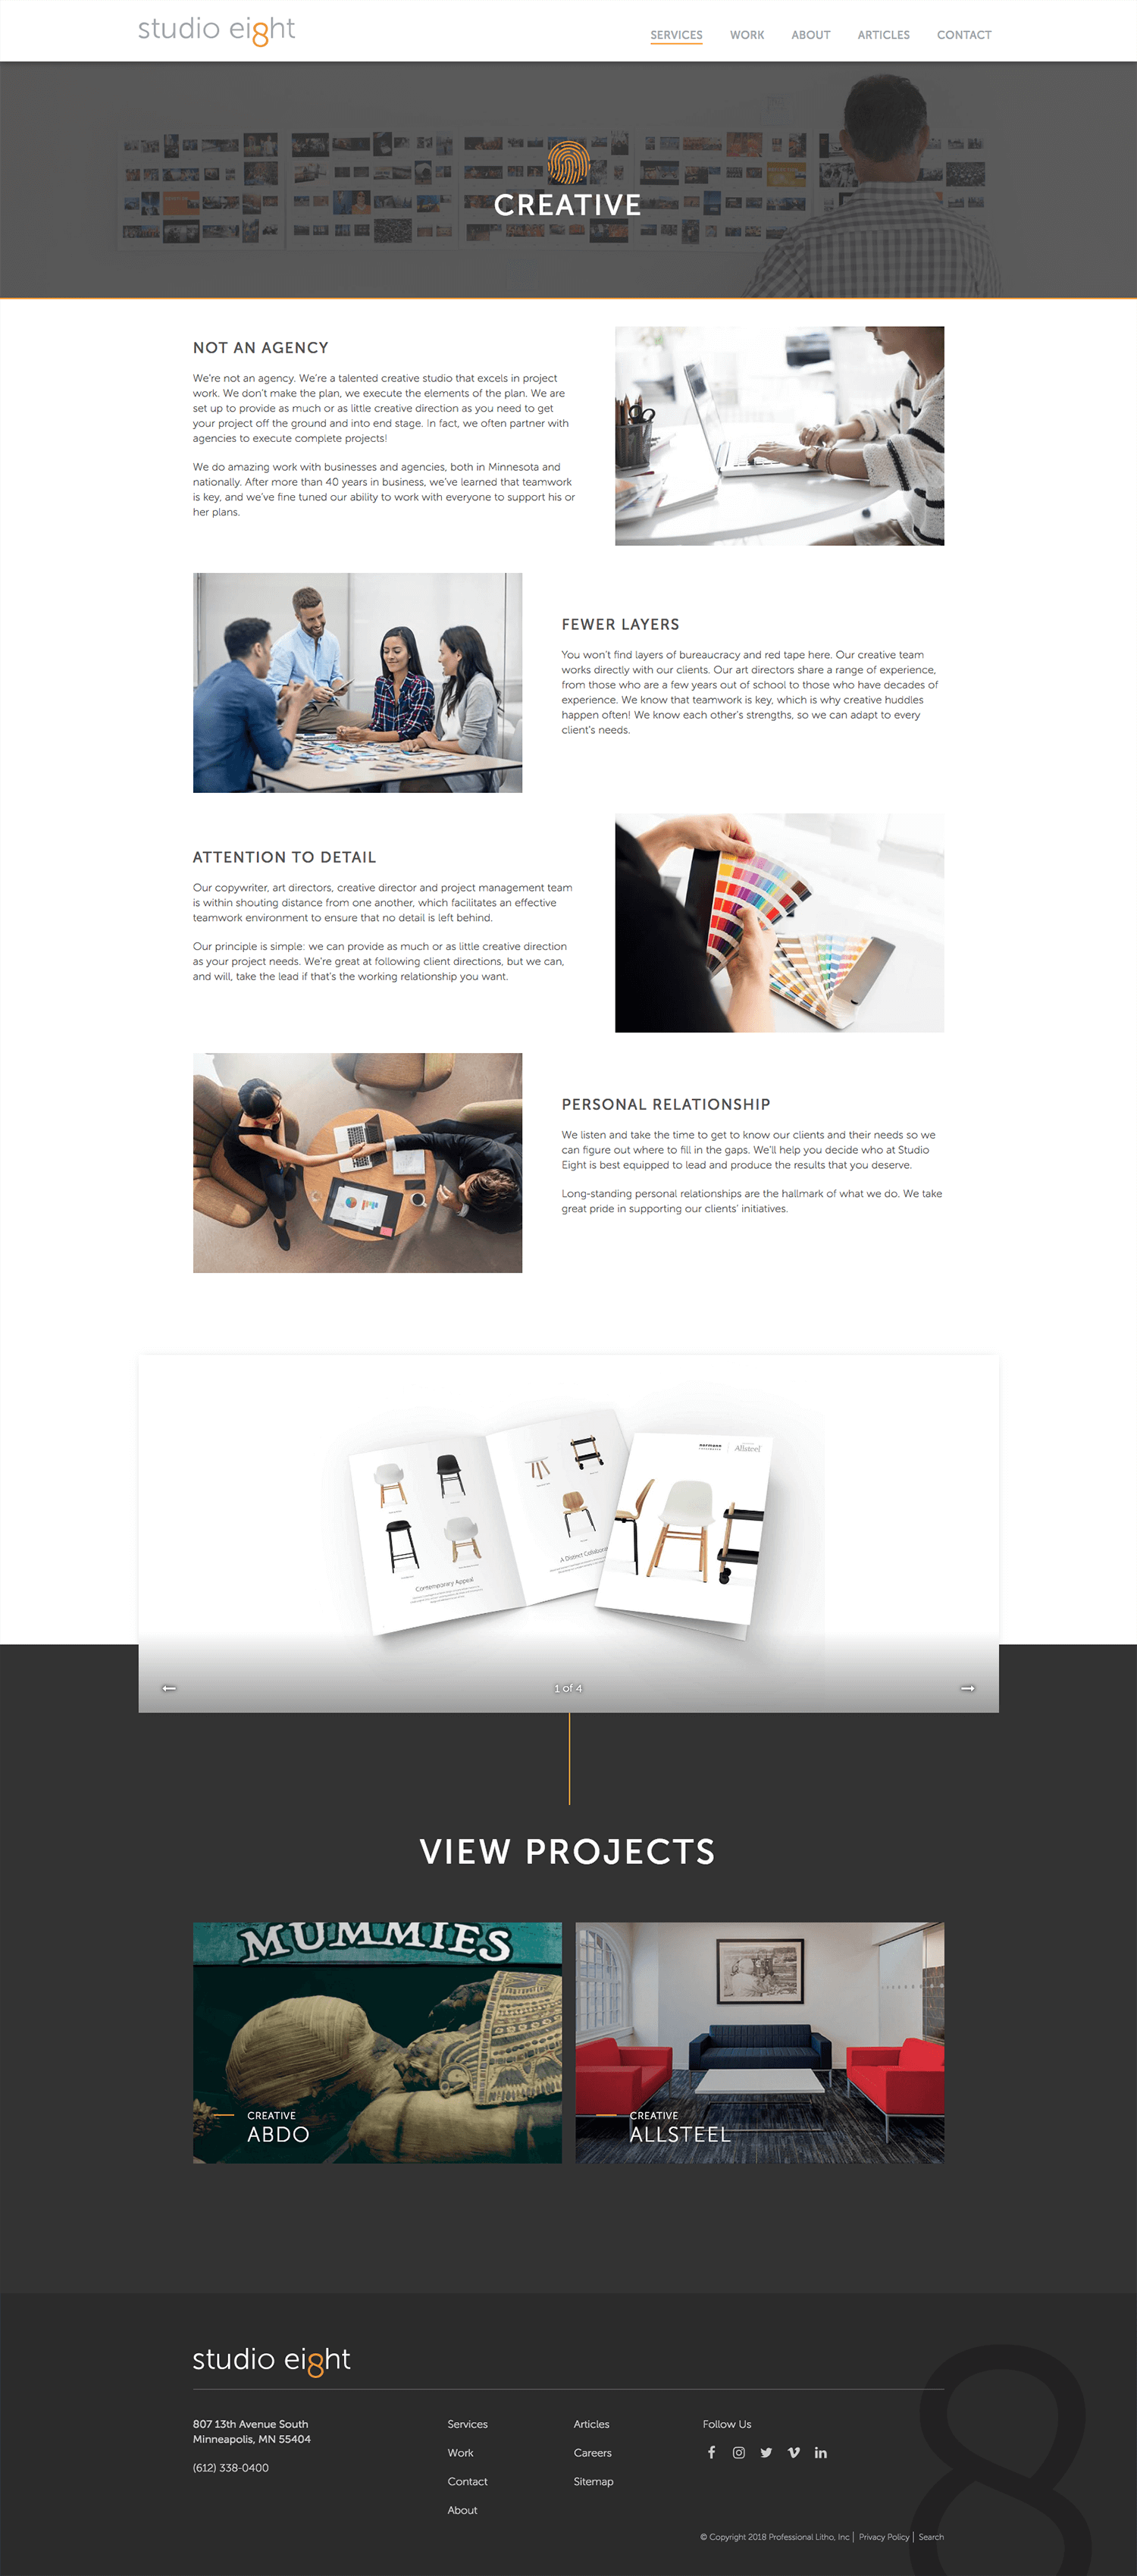 Full Image of Studio Eight's Creative Services Page.